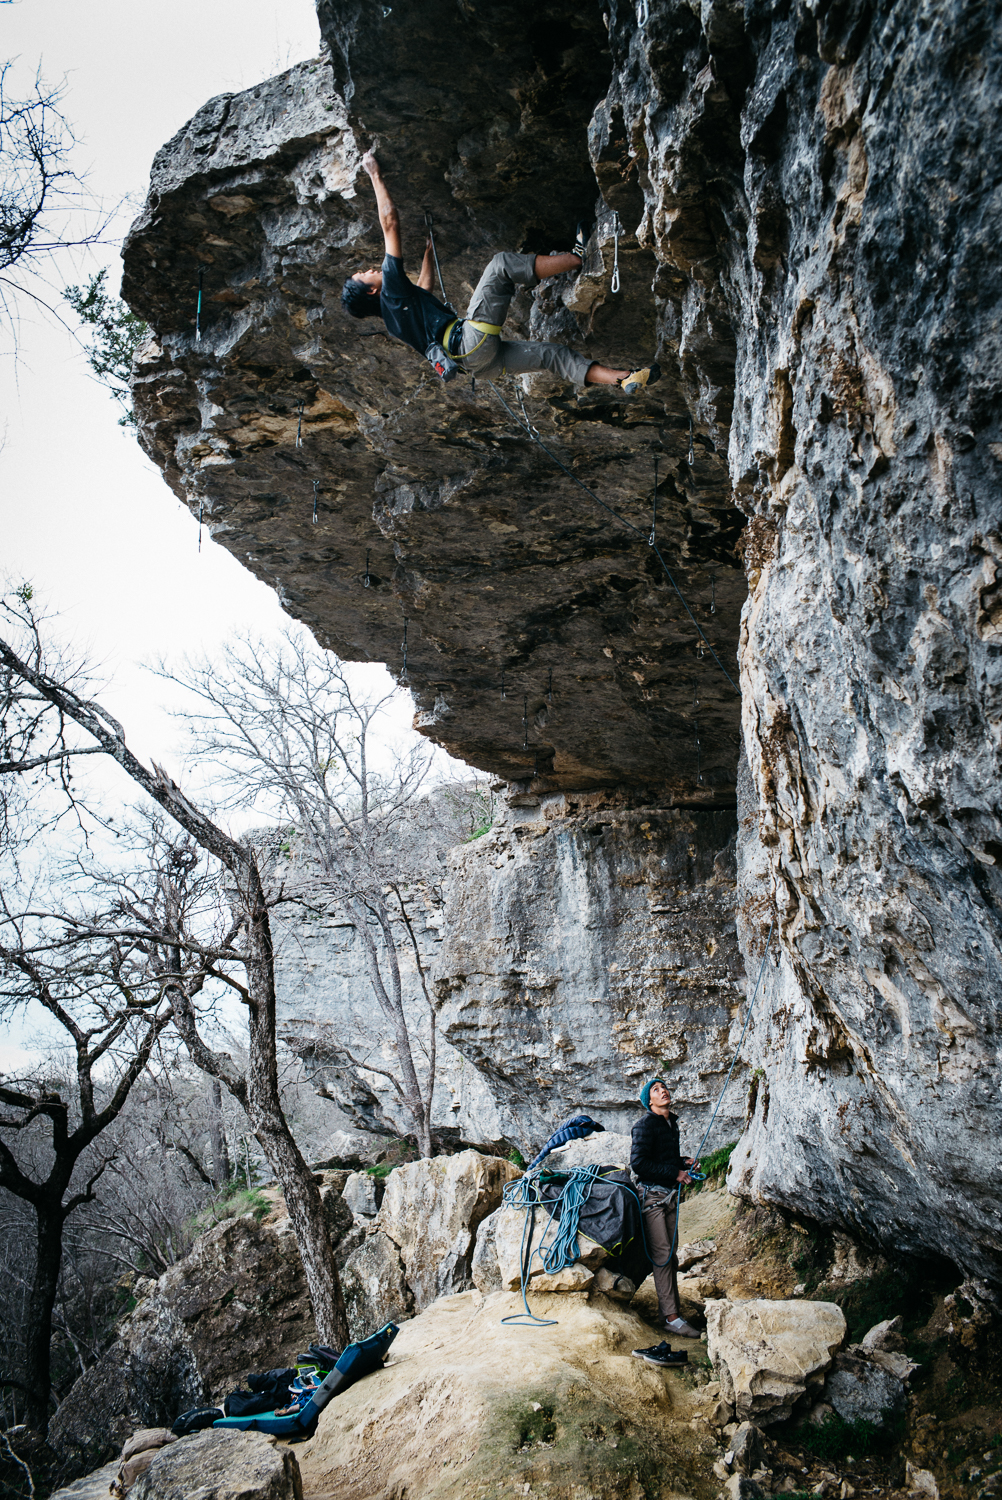 Ben pulling the lip on a short sport route at Reimer's Ranch Park along the North Bank.